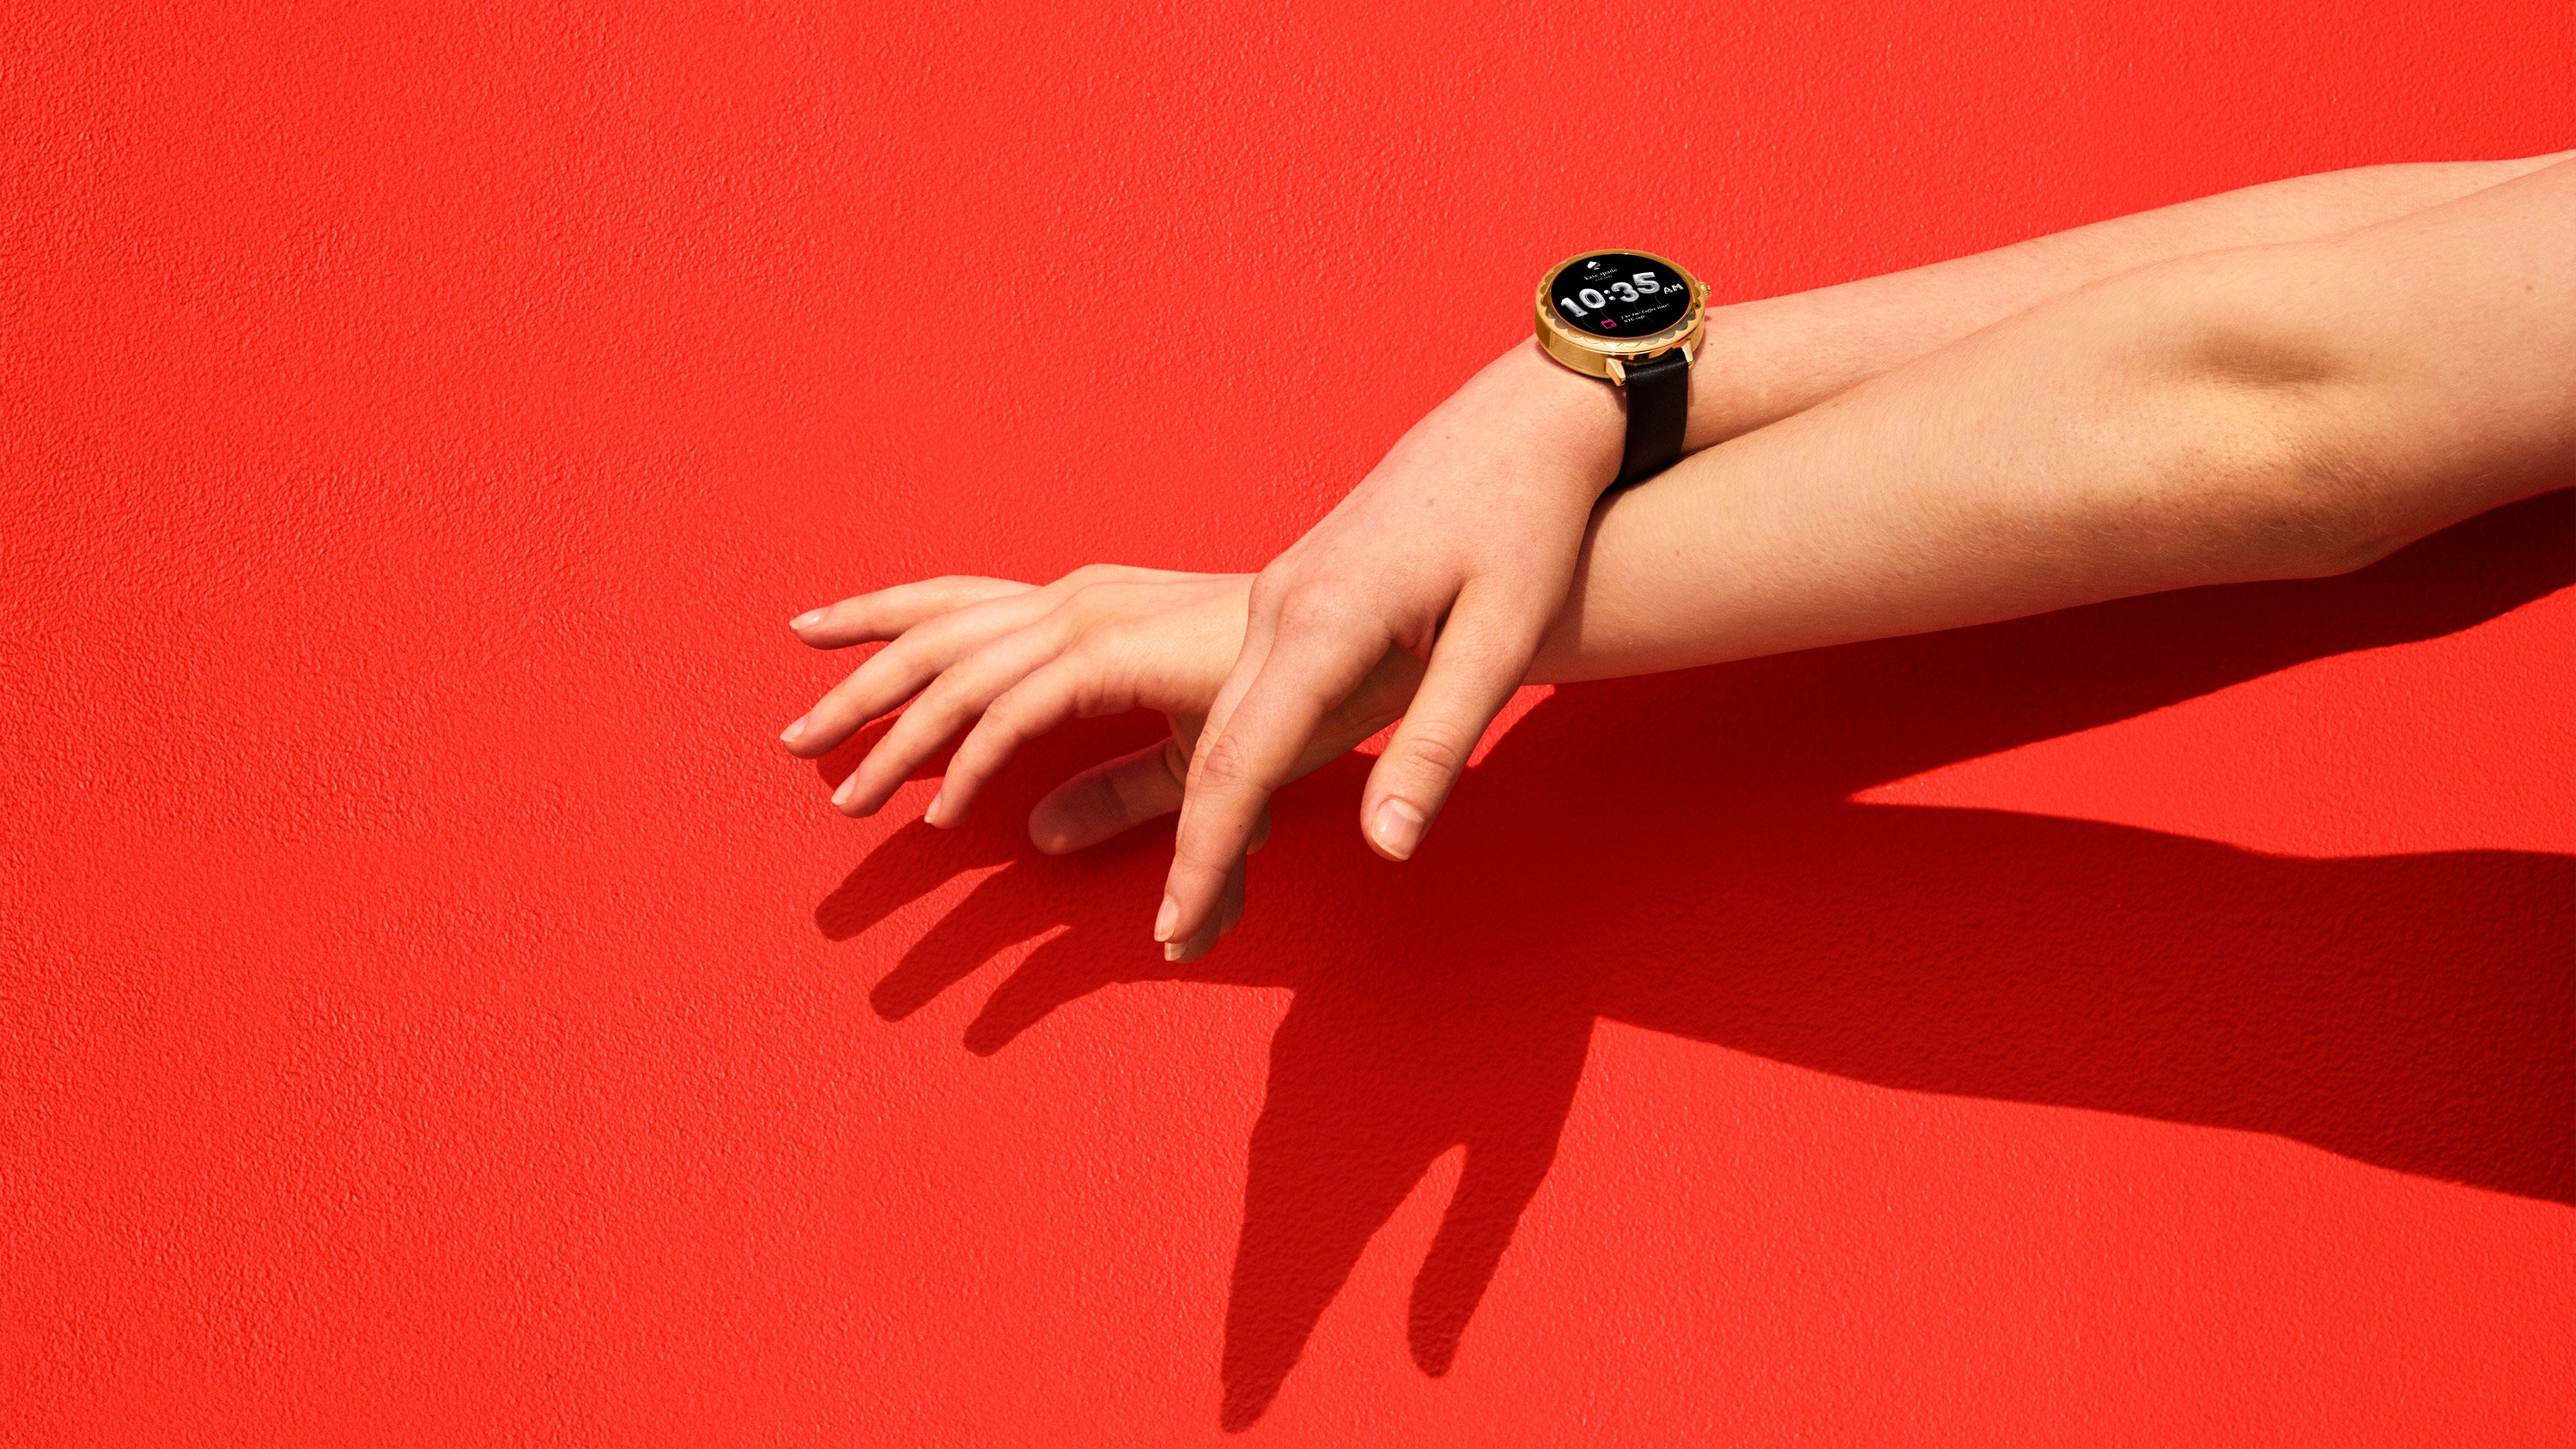 Close up of woman's arm, Wear Google OS gold watch with black band, art direction by RoAndCo